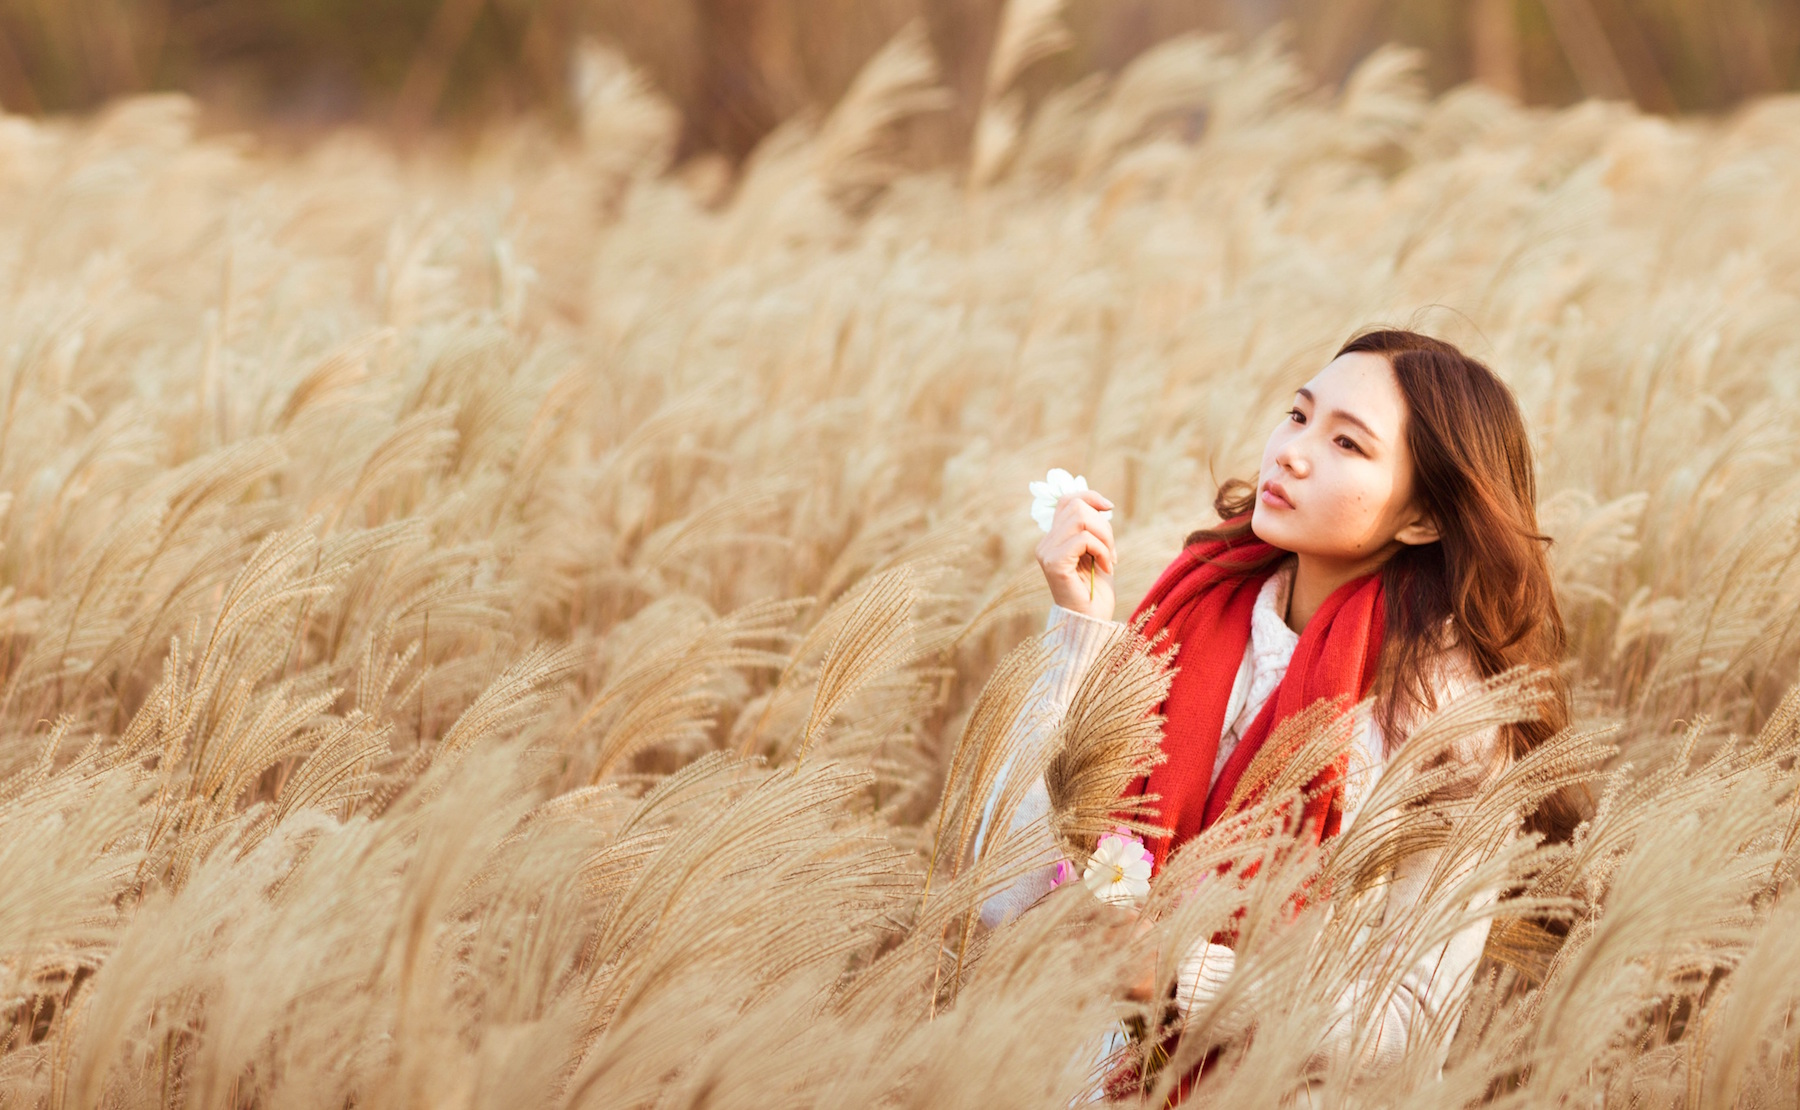 Woman alone deep in thought in a field of wheat, wearing a bright red scarf.